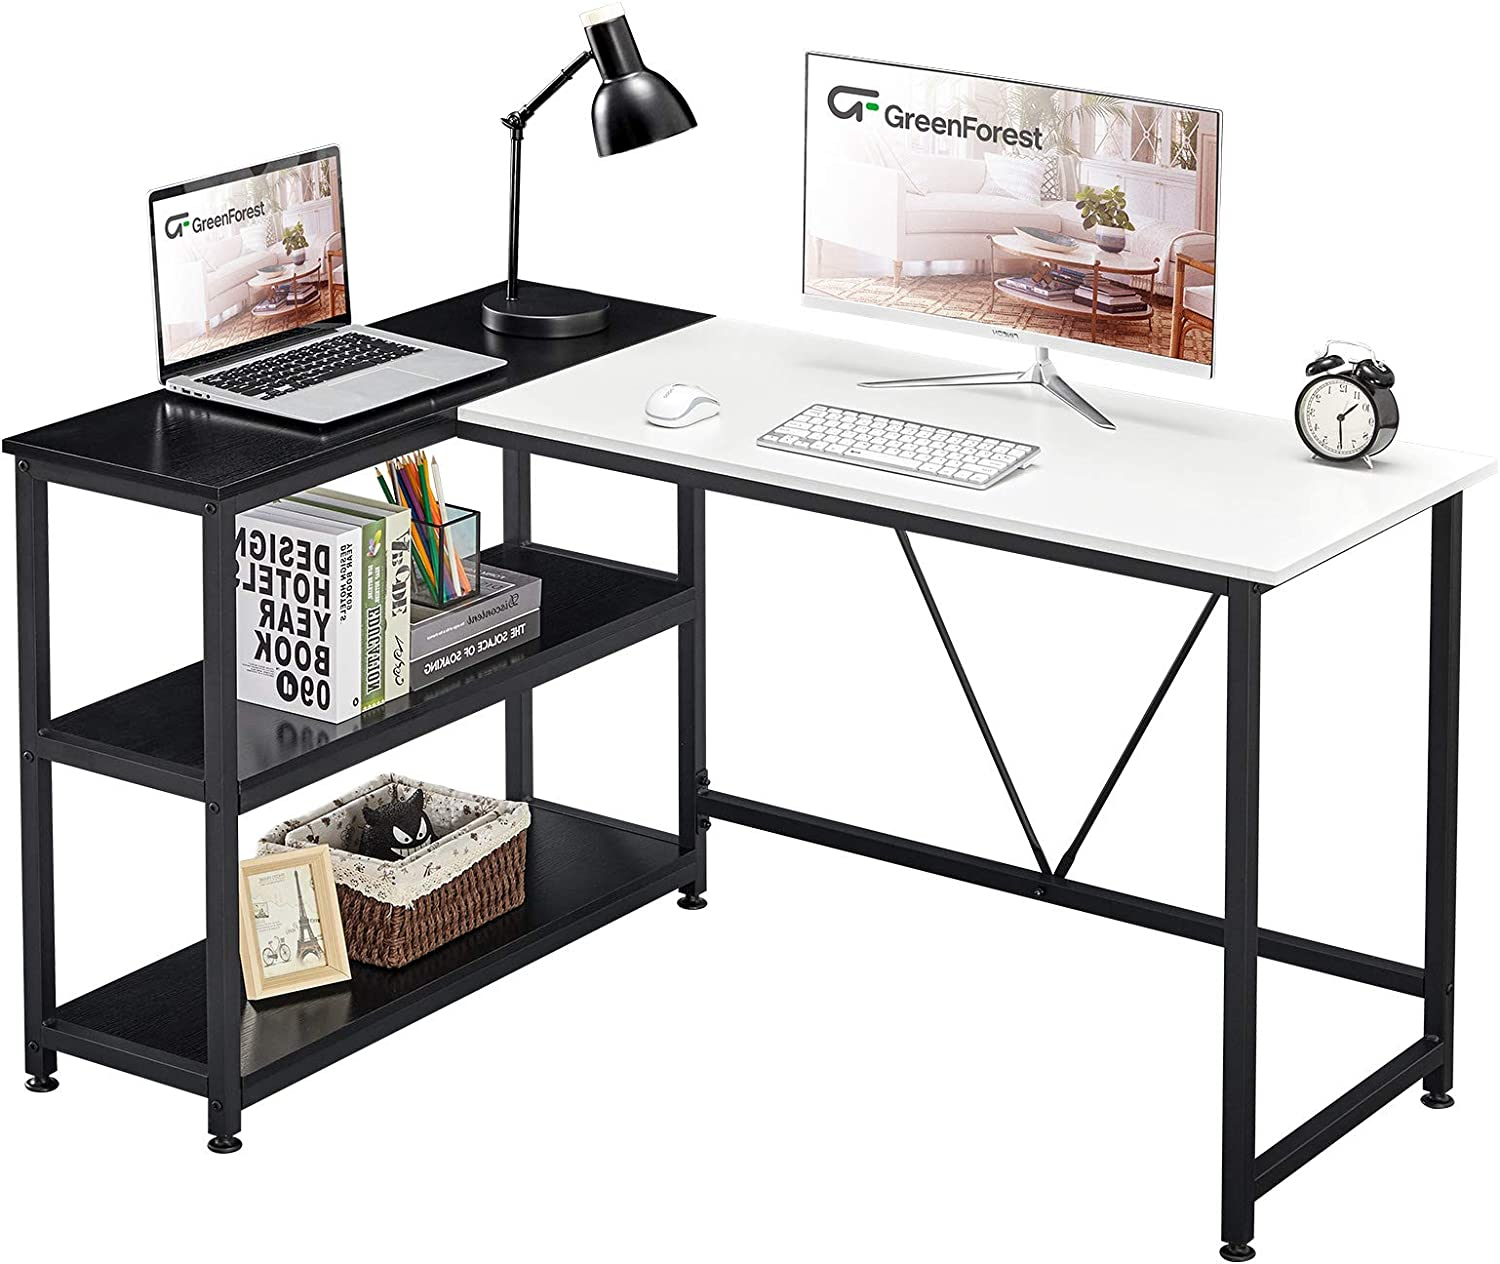 GreenForest L Shaped Desk 51x35.4 inch Corner Computer Desk with Reversible Storage Shelf Saving Space Gaming Desk Study Writing Table for Home Office Workstation Laptop Table, White and Black